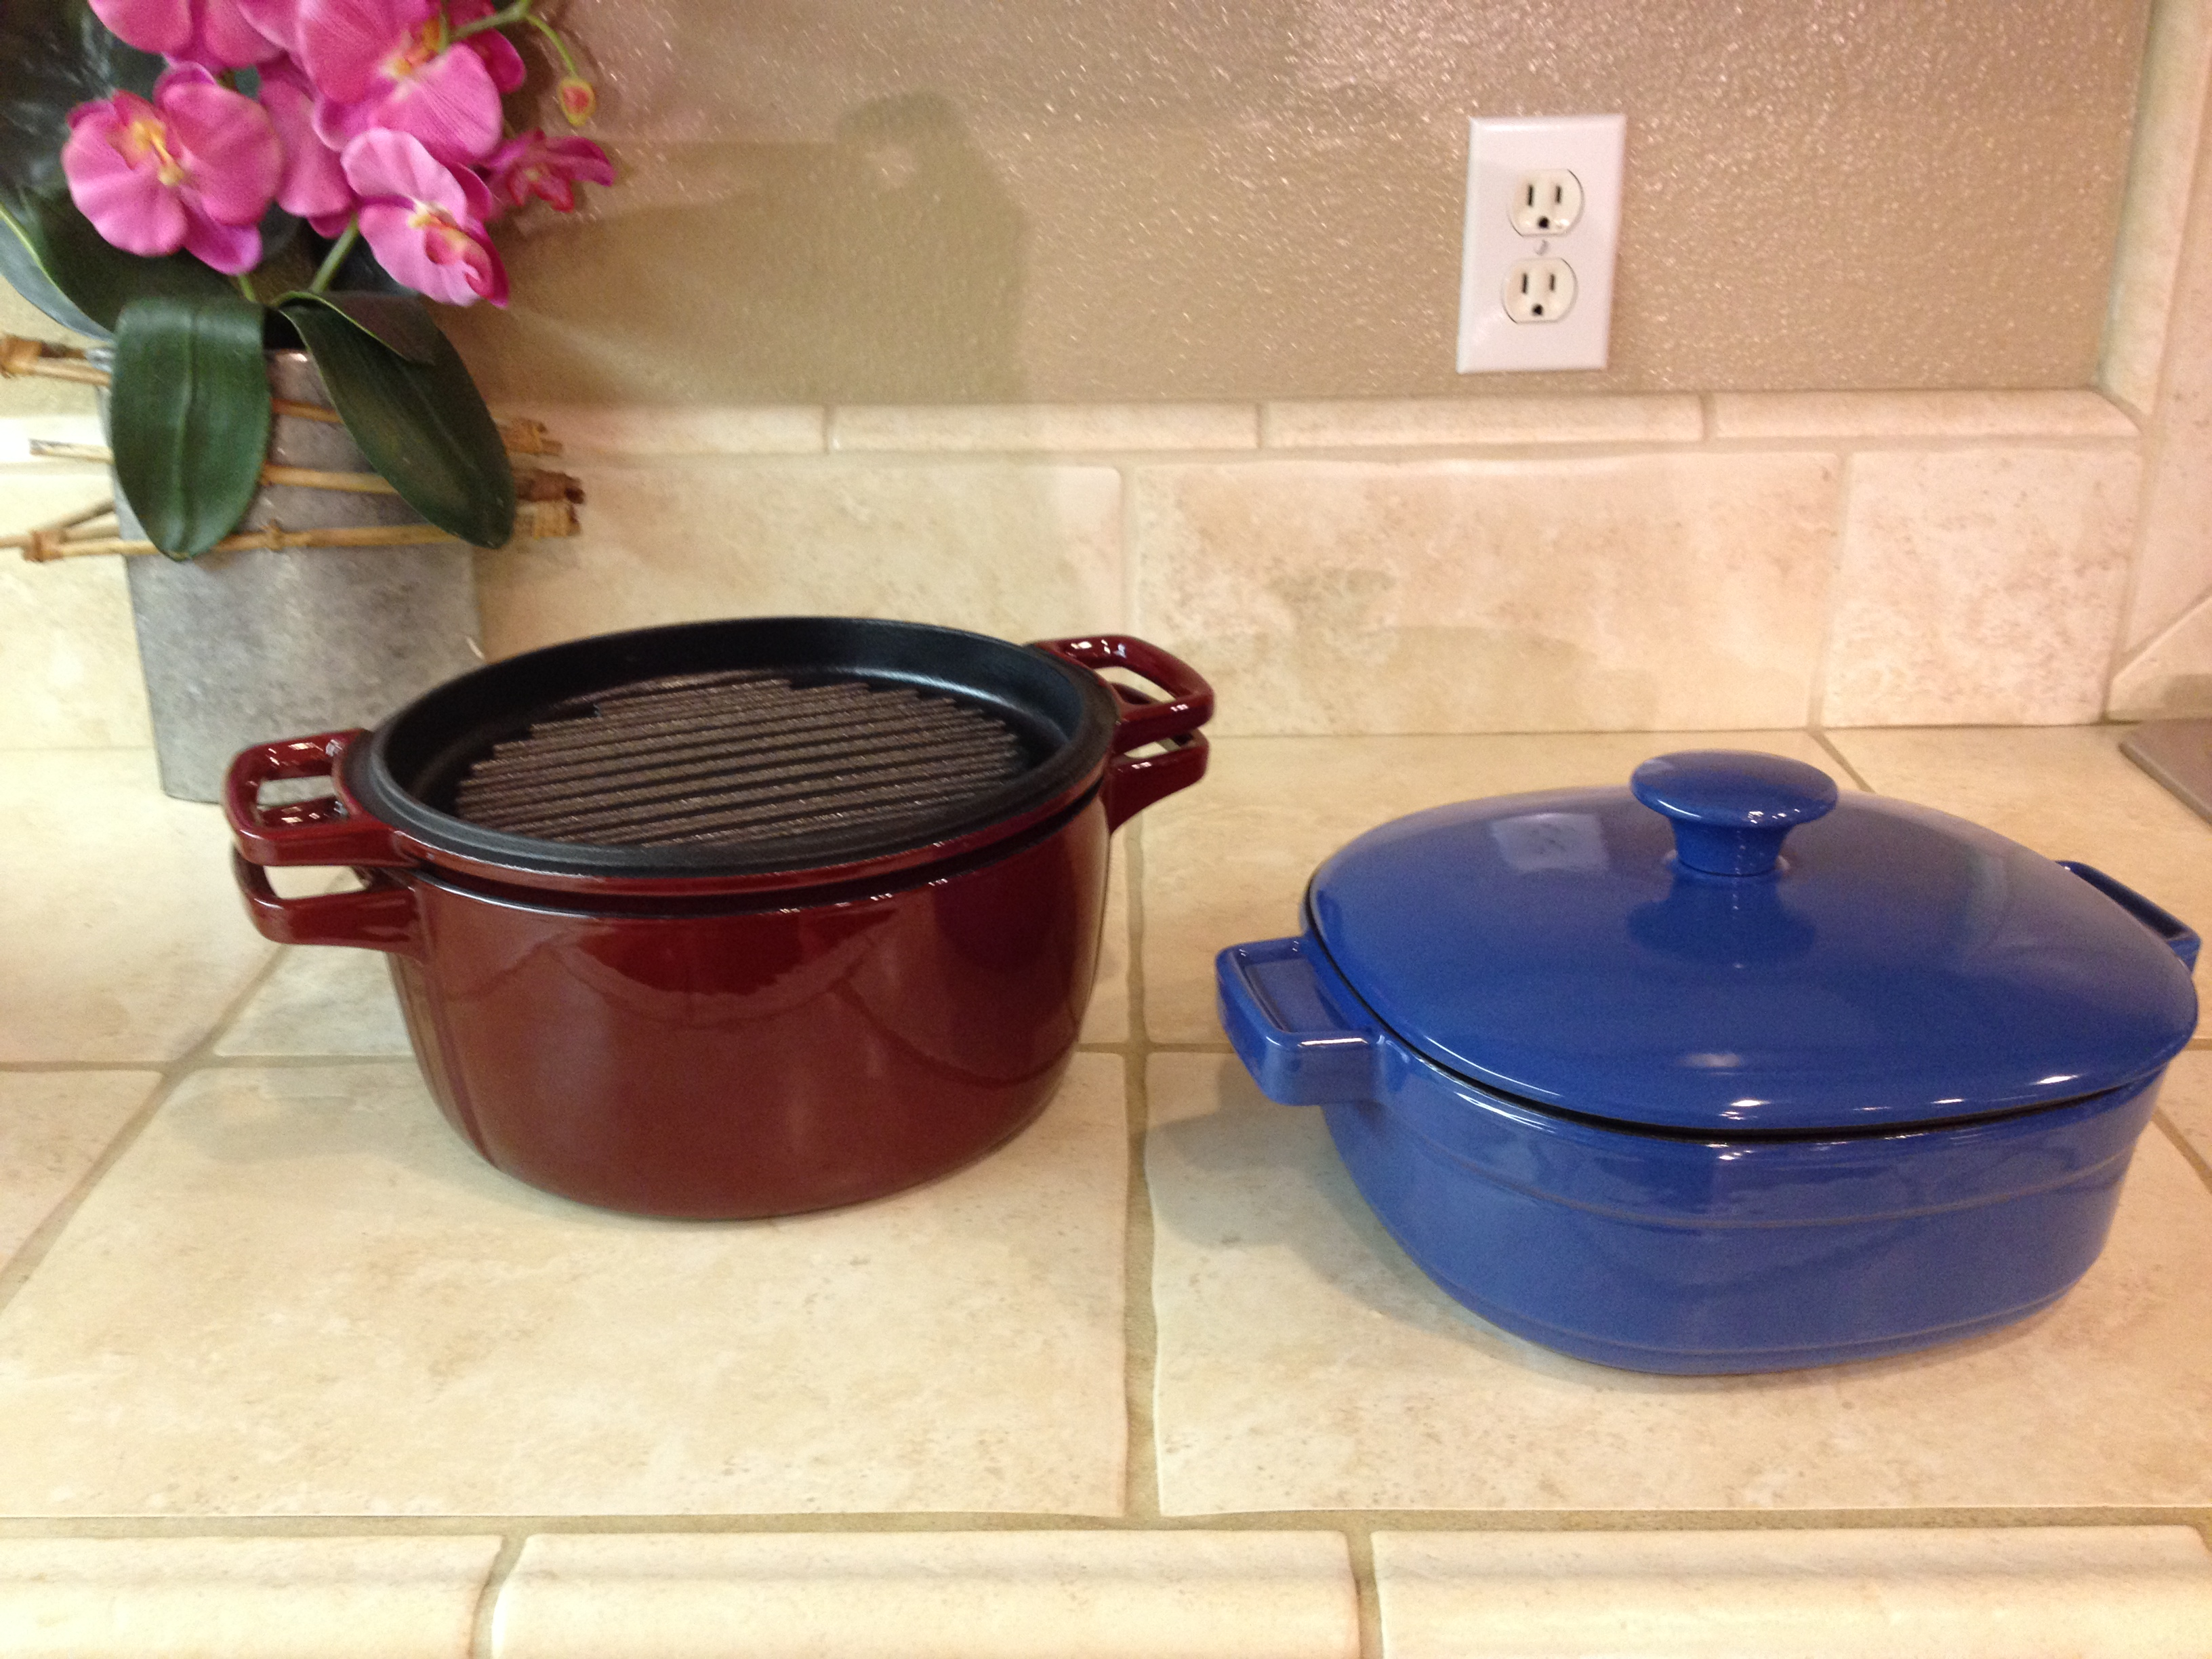 KitchenAid® Cast Iron Casserole Cookware With Lid As A Grill